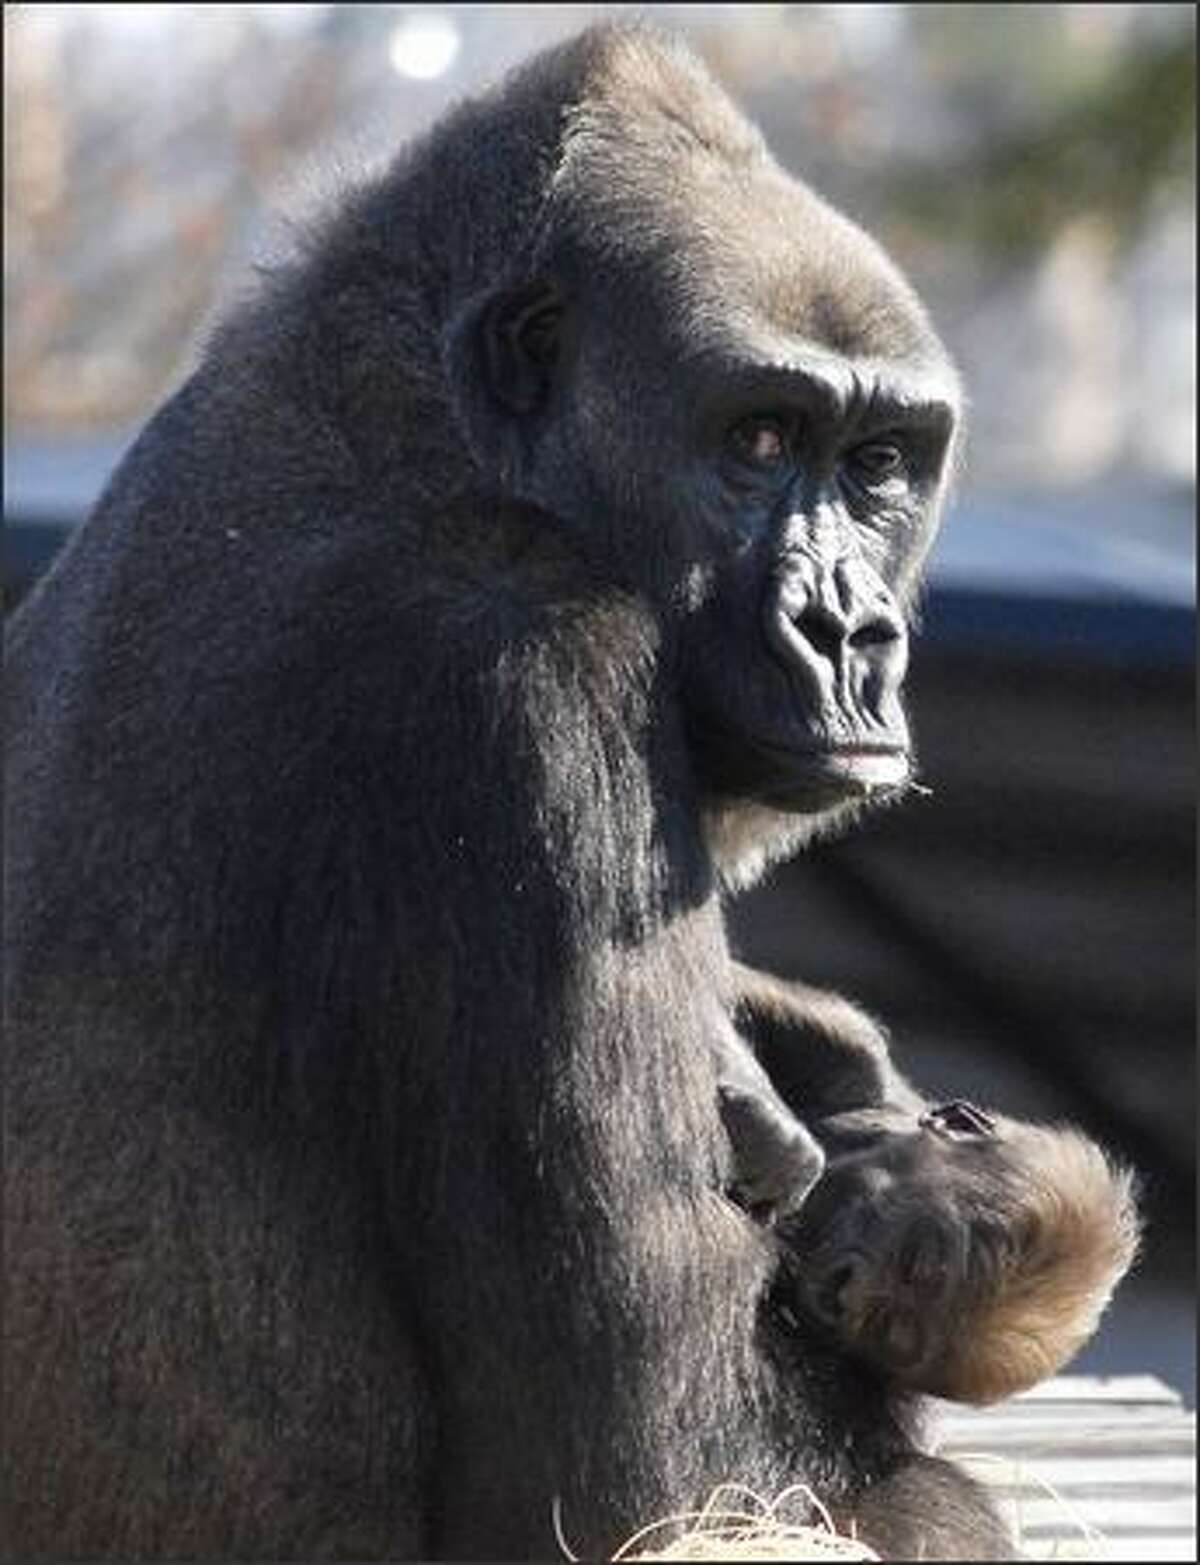 Sekani, a 16-year-old Western Lowland gorilla, holds her newborn at the Little Rock Zoo. The baby gorilla, who does not have a name yet, was shown to the public Saturday for the first time since he was born Oct. 10. (AP Photo/Mike Wintroath)